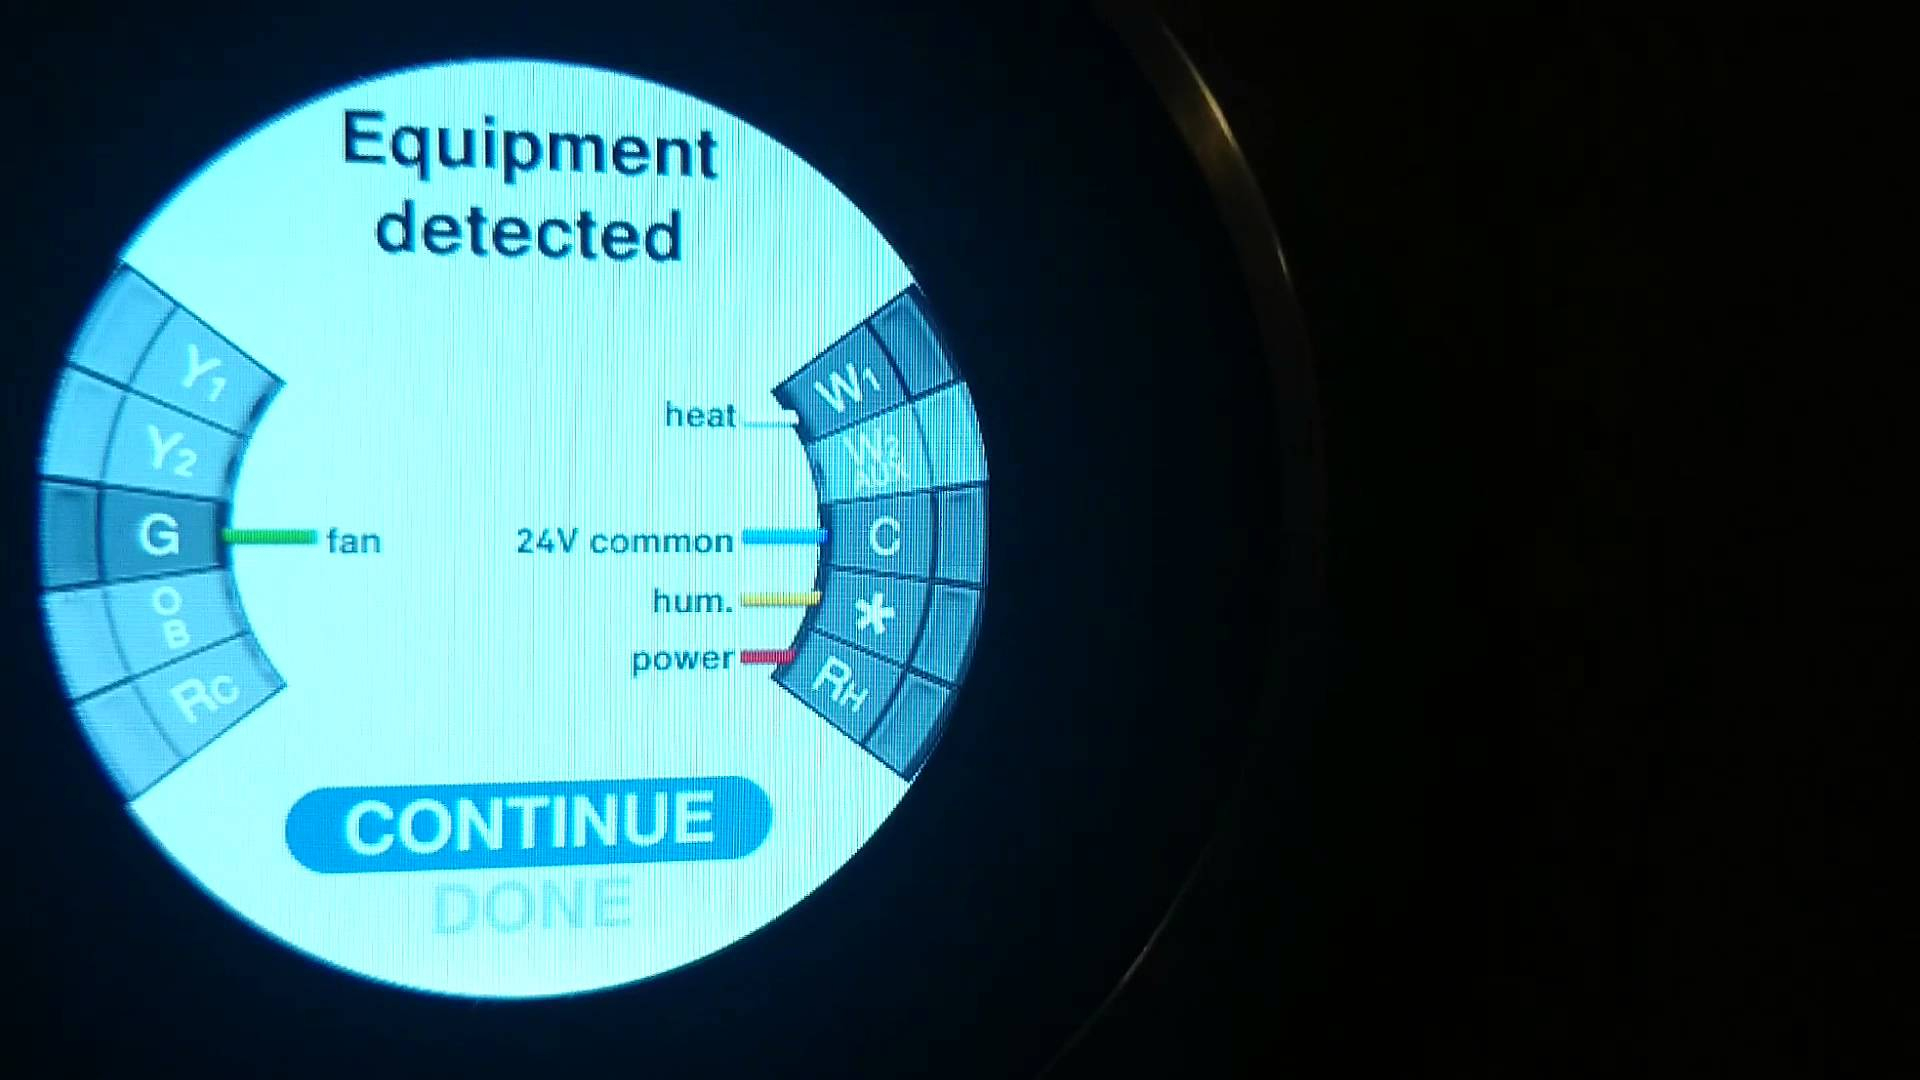 Wiring Diagram For Nest Thermostat With Humidifier - Wiring Diagrams - Nest Wiring Diagram For Humidifier